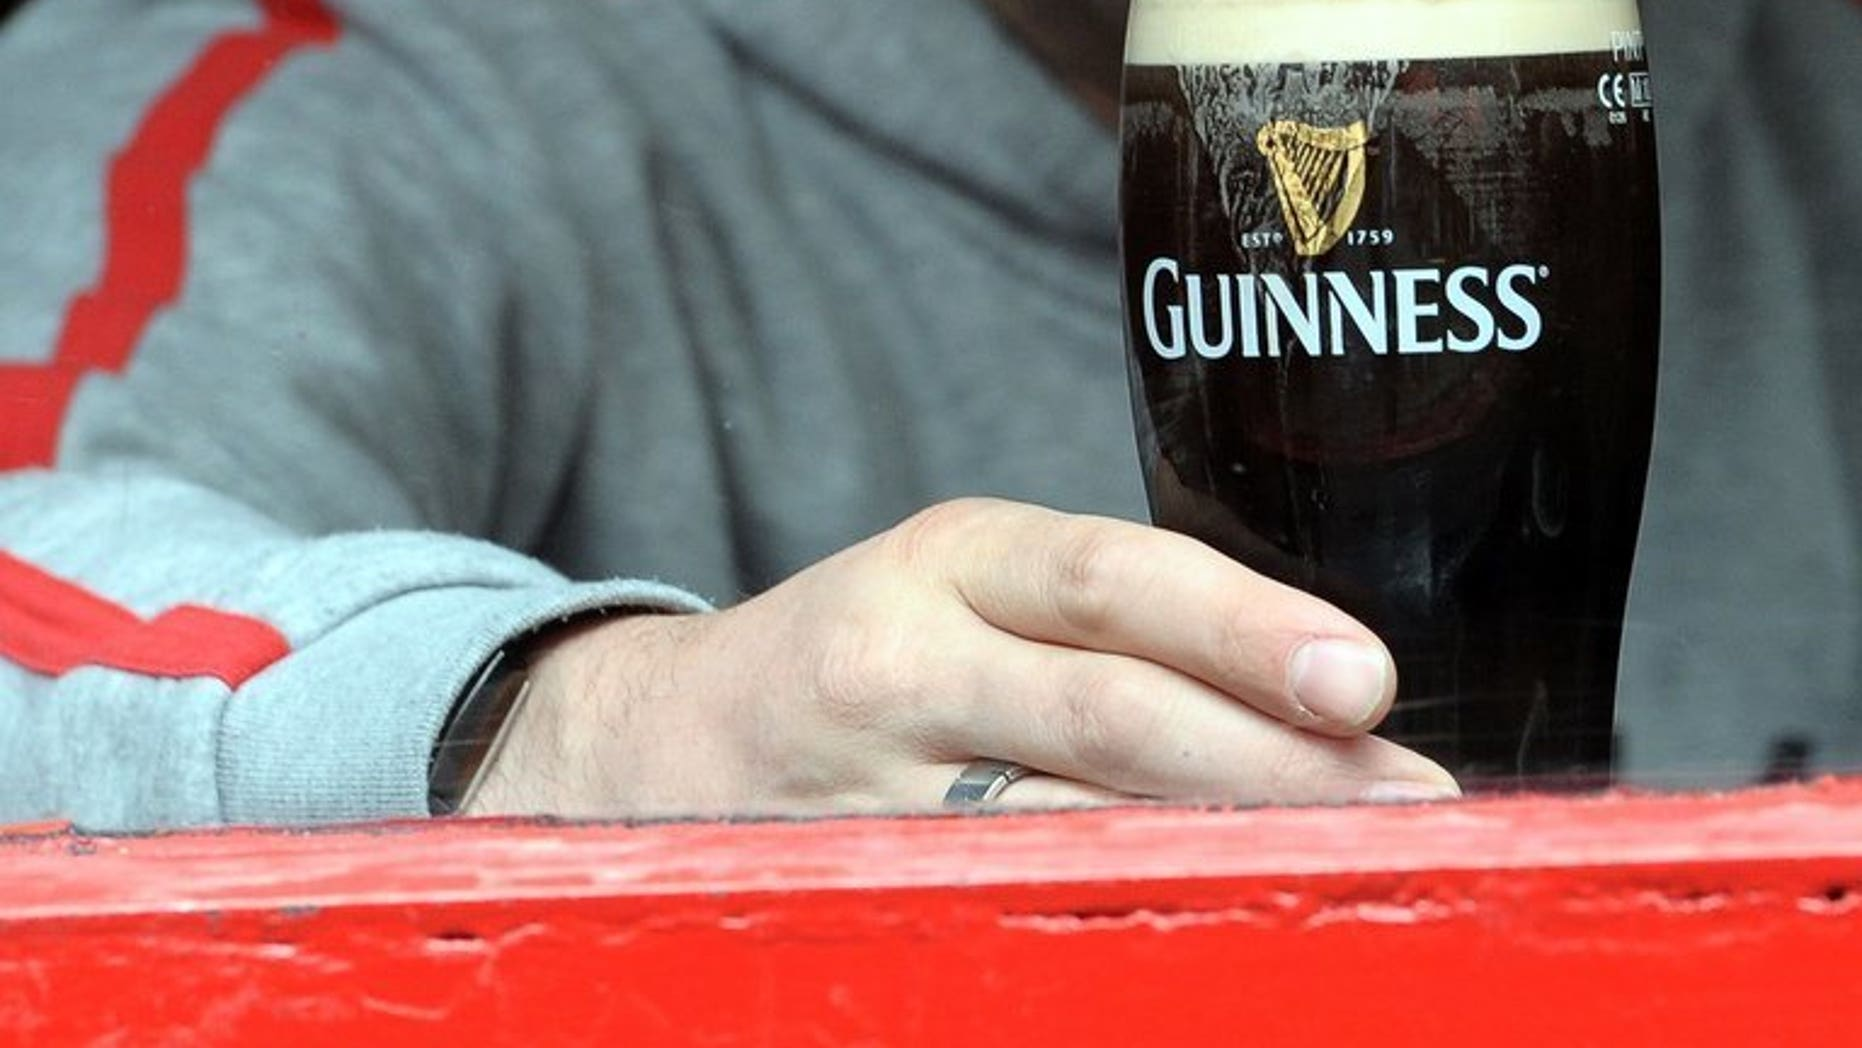 A man is pictured through the window of a bar drinking a pint of Guinness stout in The Temple Bar area of Dublin, Ireland on May 20, 2011. Diageo, the world's biggest producer of alcoholic drinks -- including Guinness -- said Wednesday that annual net profits rallied by almost a third, lifted by strength in the United States and emerging markets.